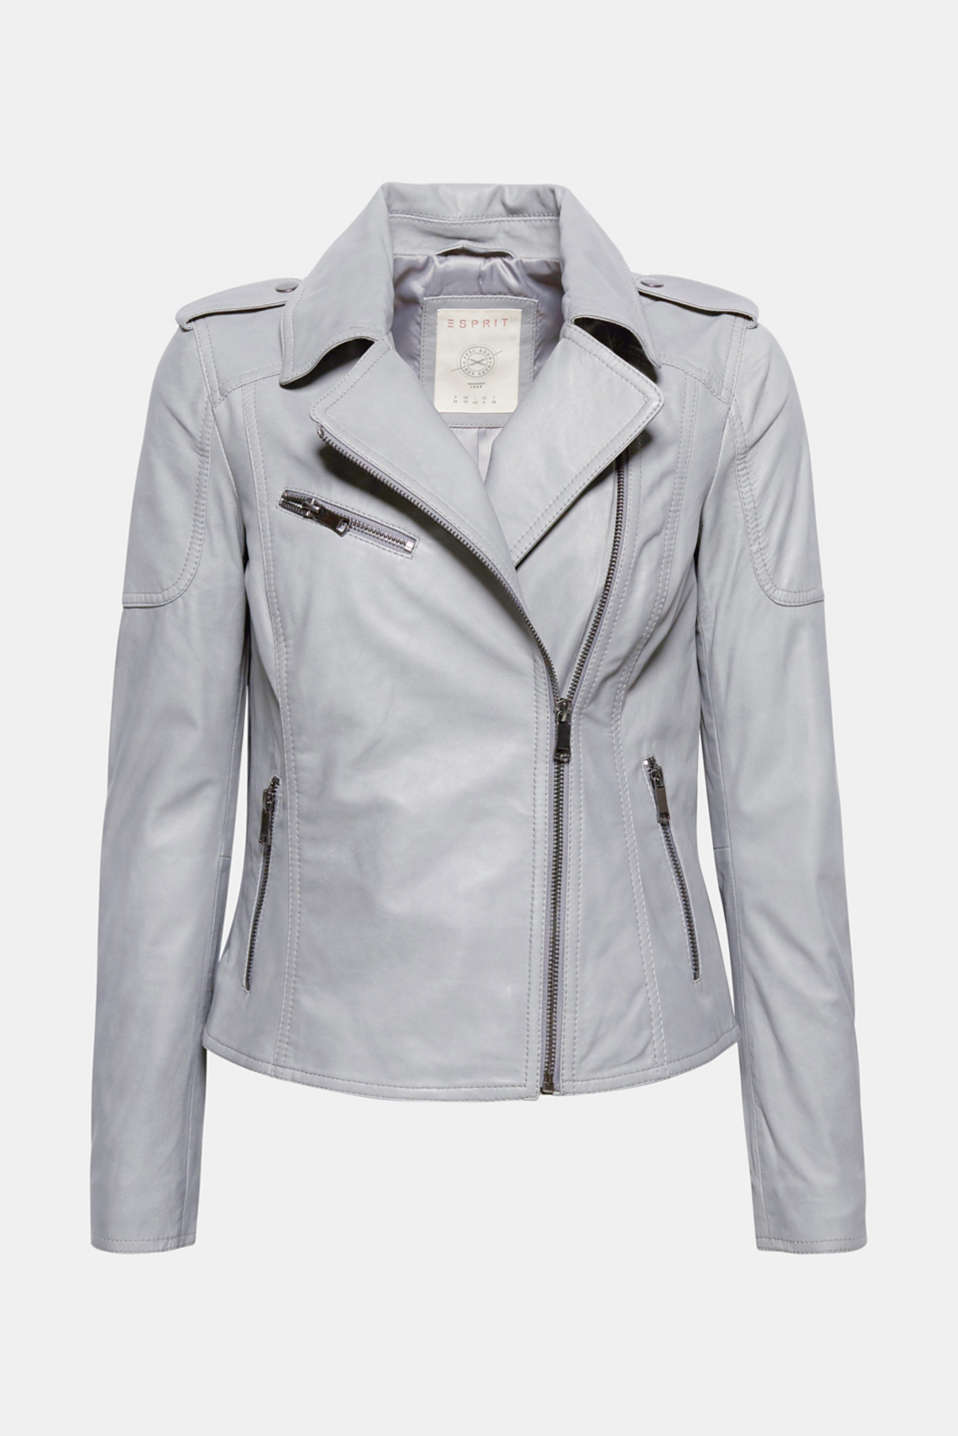 The sensationally soft leather makes this biker jacket in a stylish shade of grey an absolute must-have!